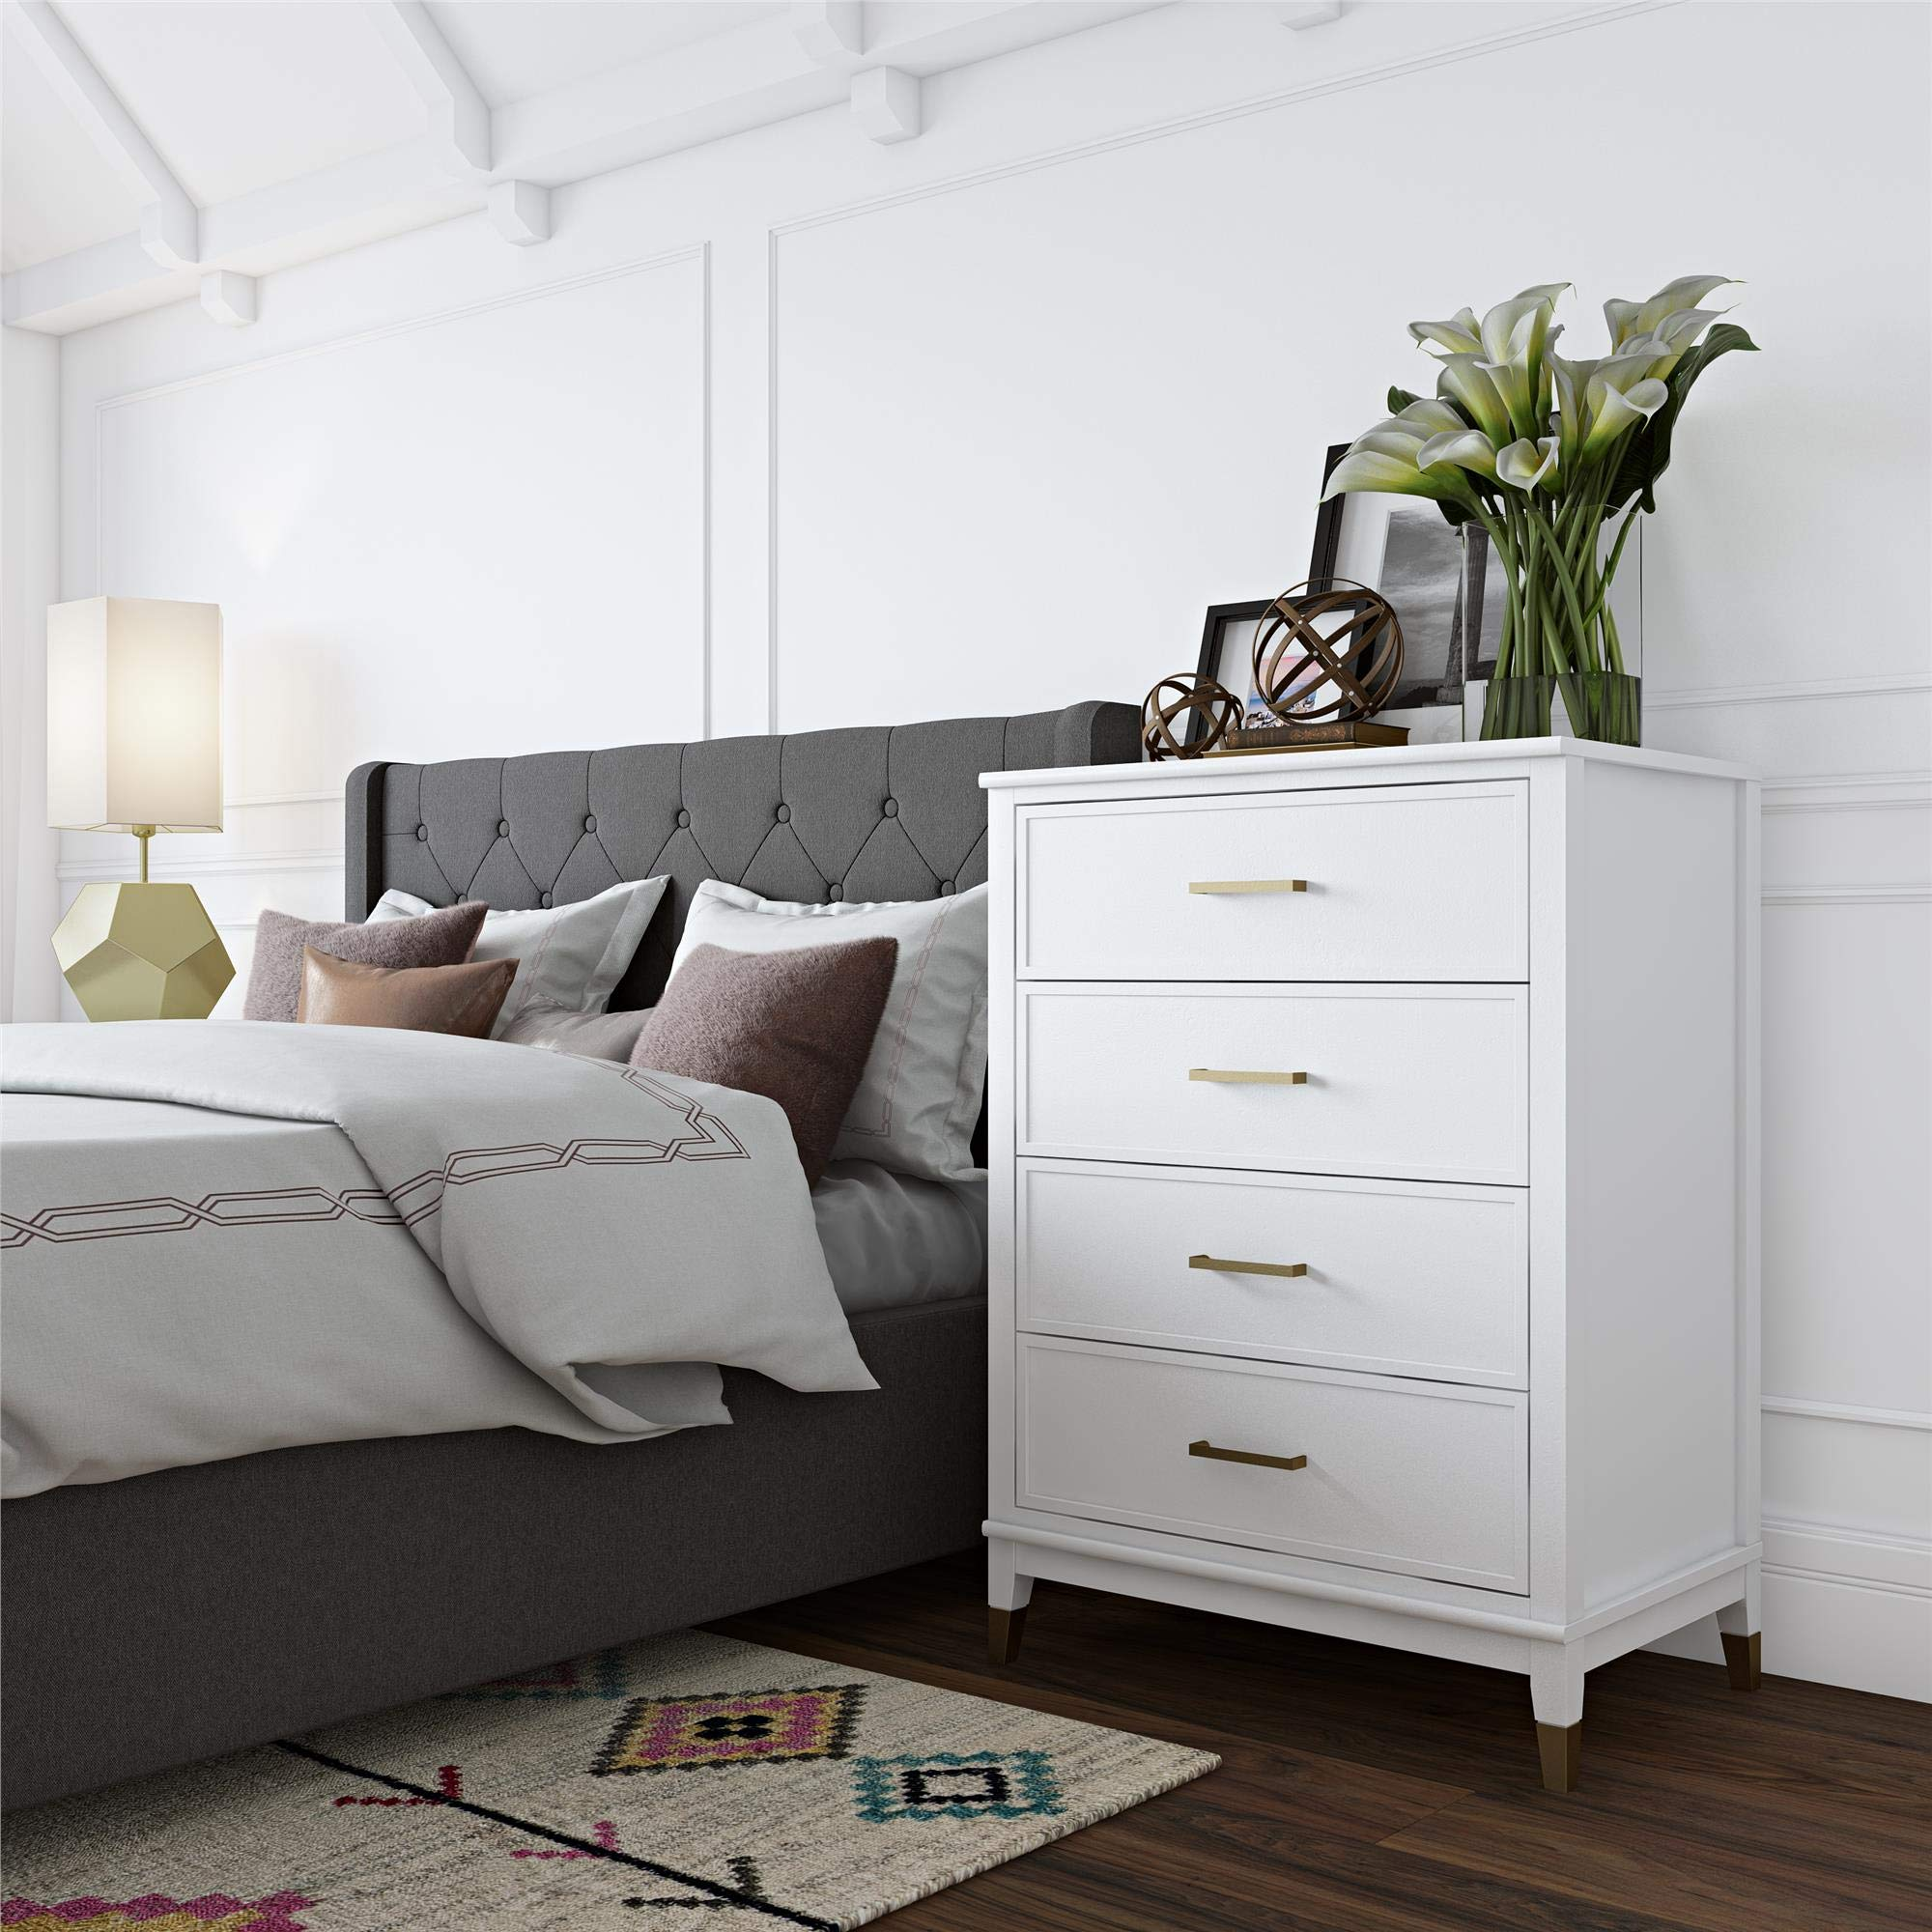 CosmoLiving Westerleigh 4 Drawer Dresser, White by CosmoLiving by Cosmopolitan